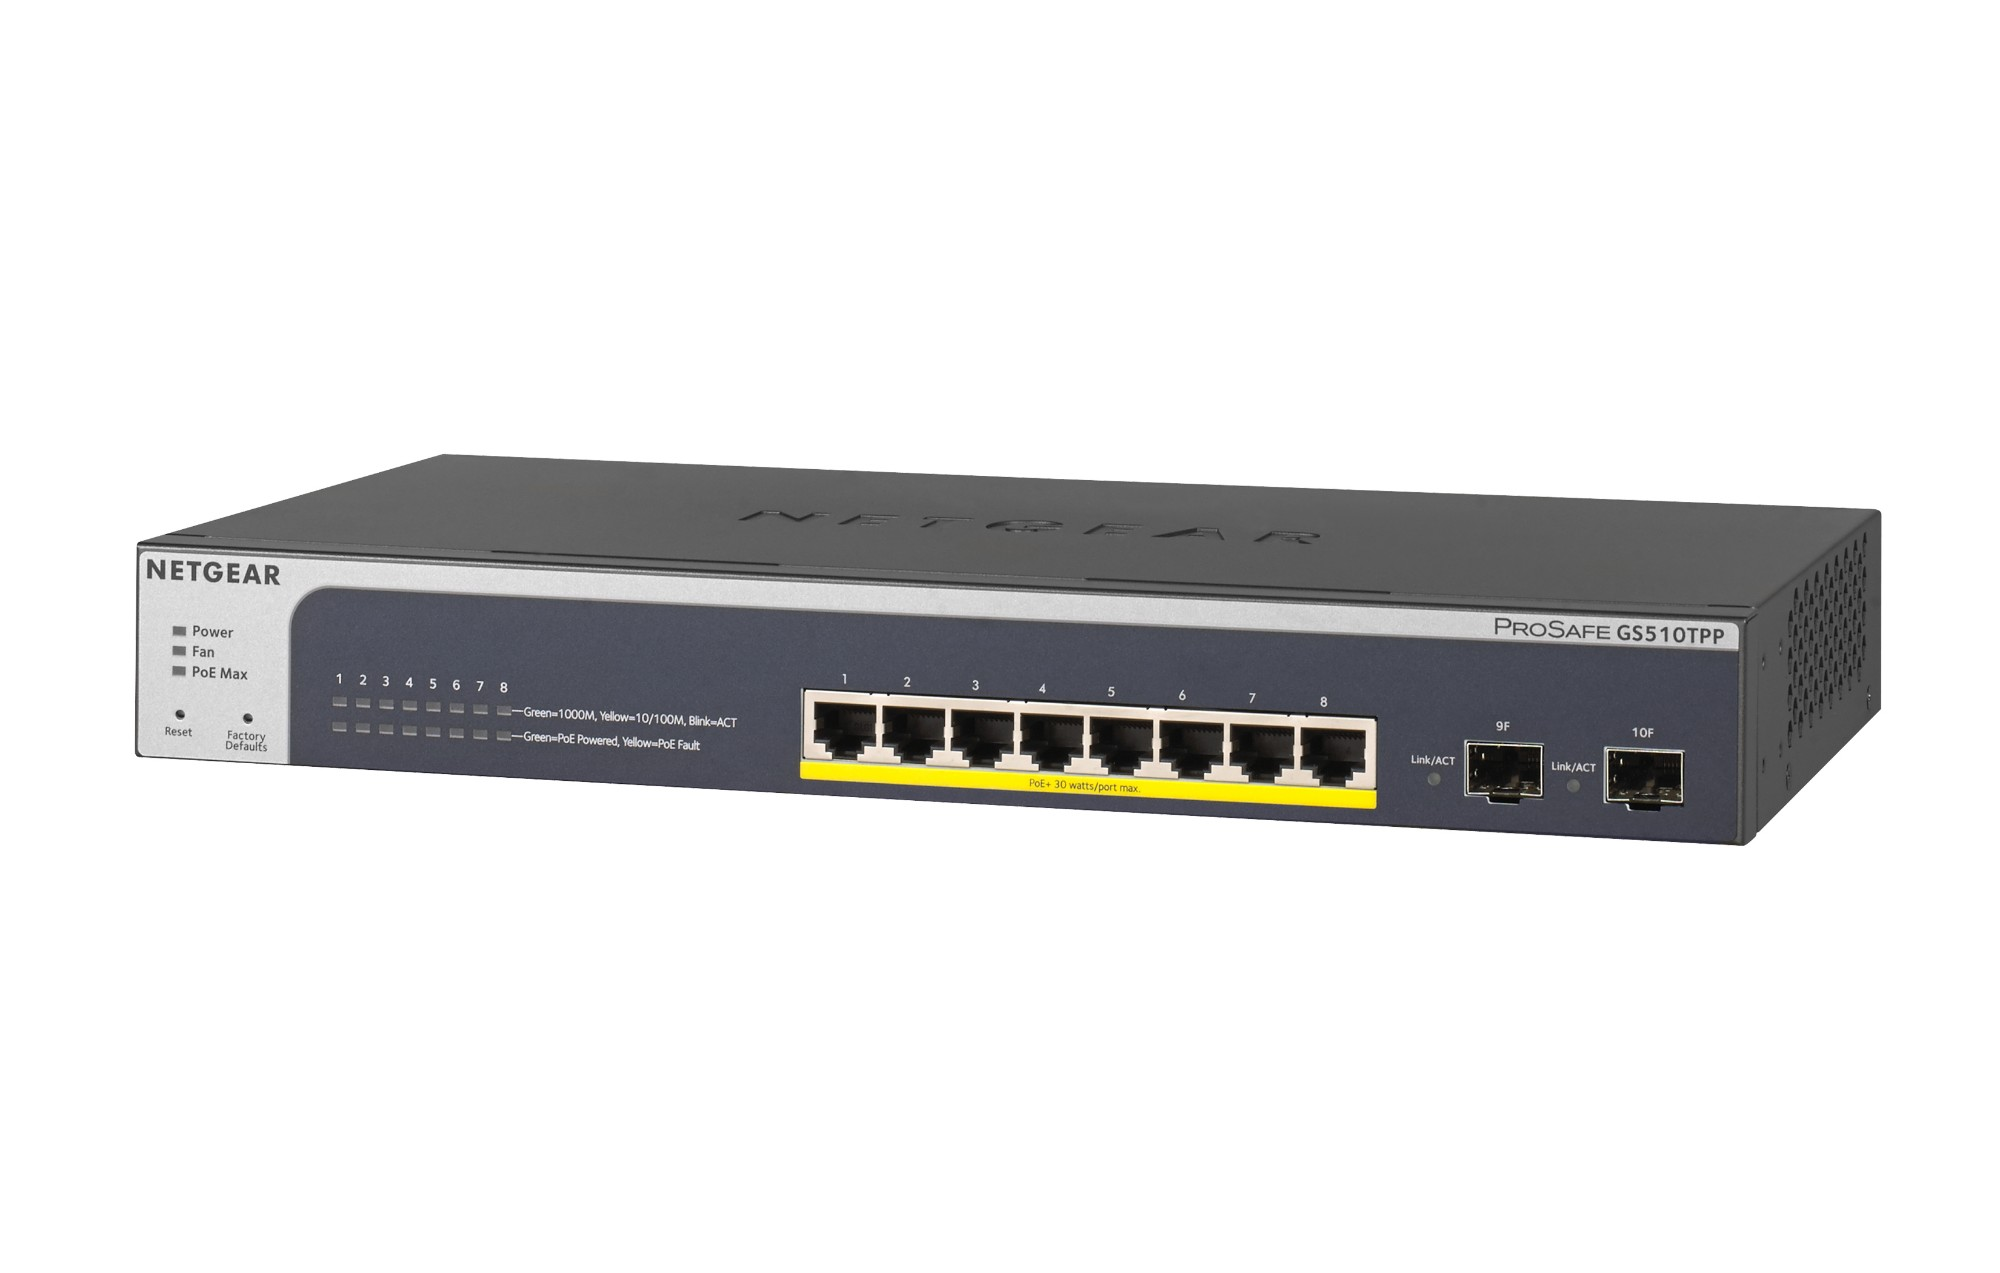 Netgear GS510TPP Managed L2/L3/L4 Gigabit Ethernet (10/100/1000) Power over Ethernet (PoE) Black